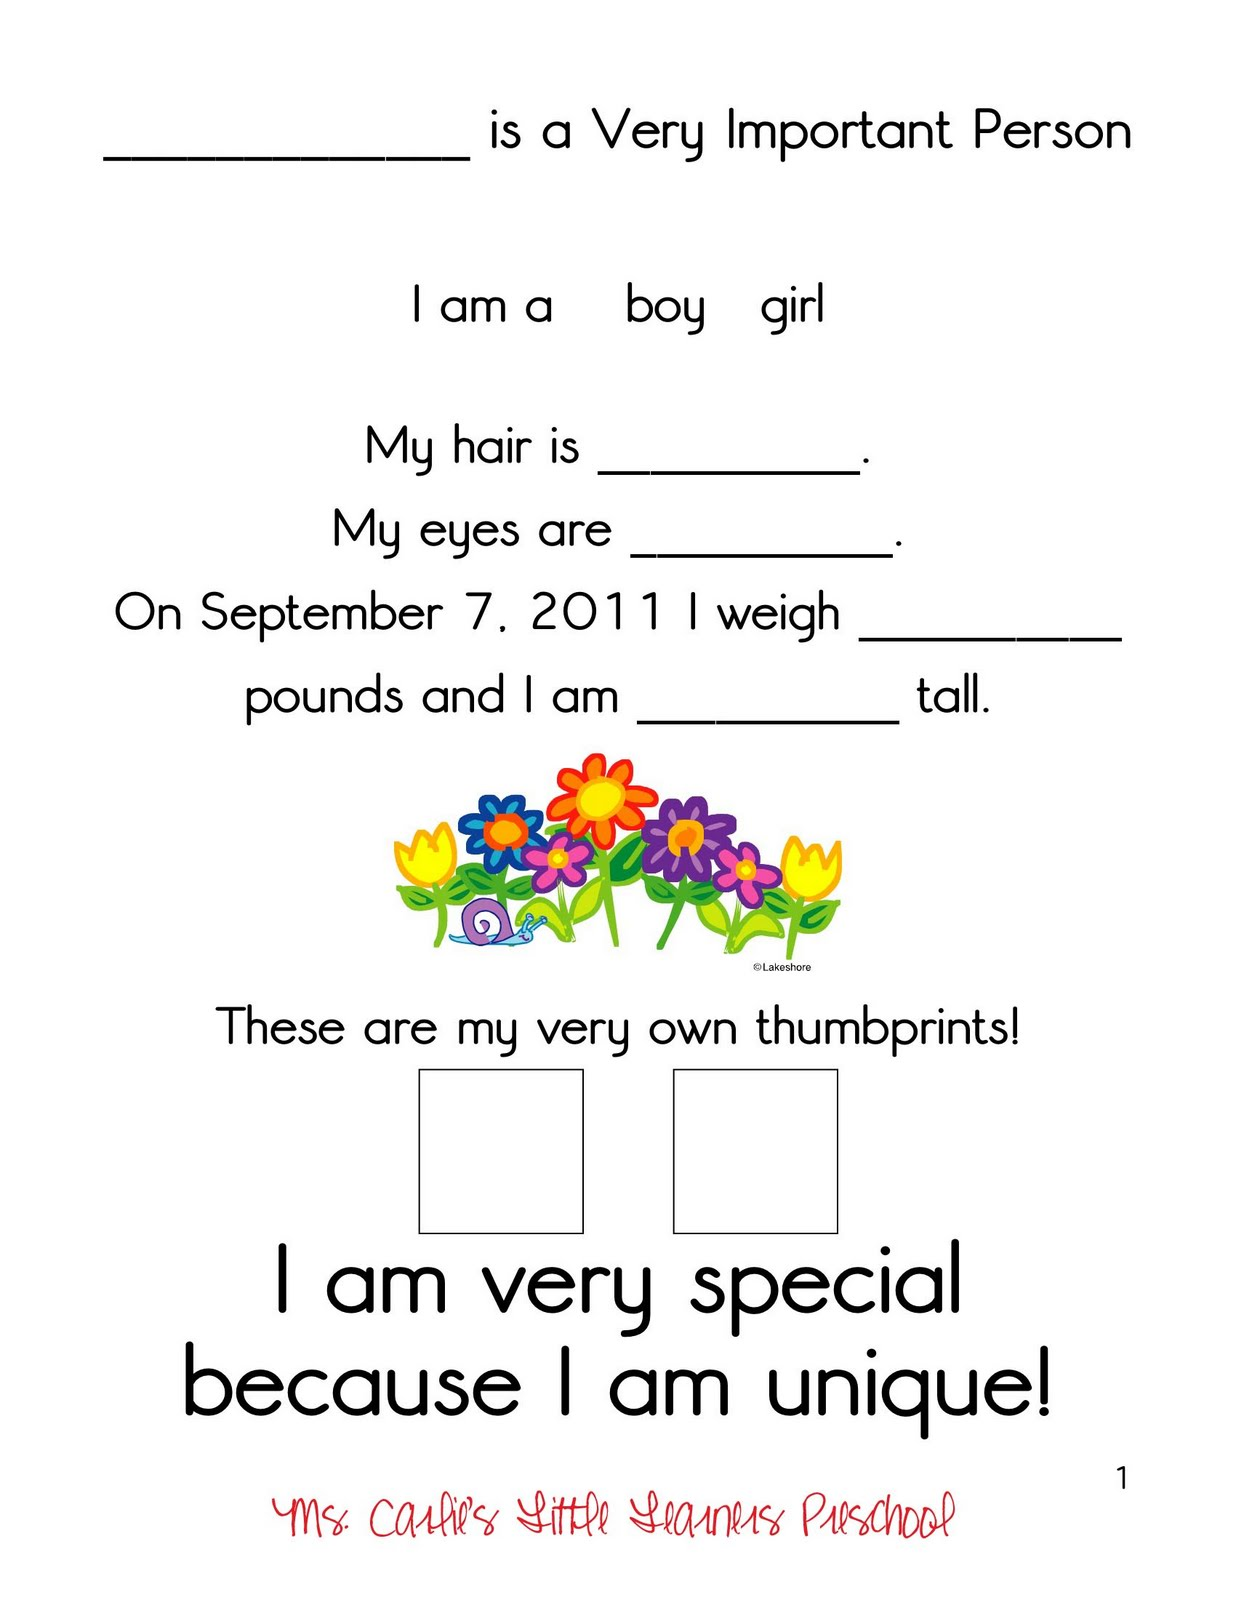 Home » Worksheet » All About Me Free Printable Worksheet